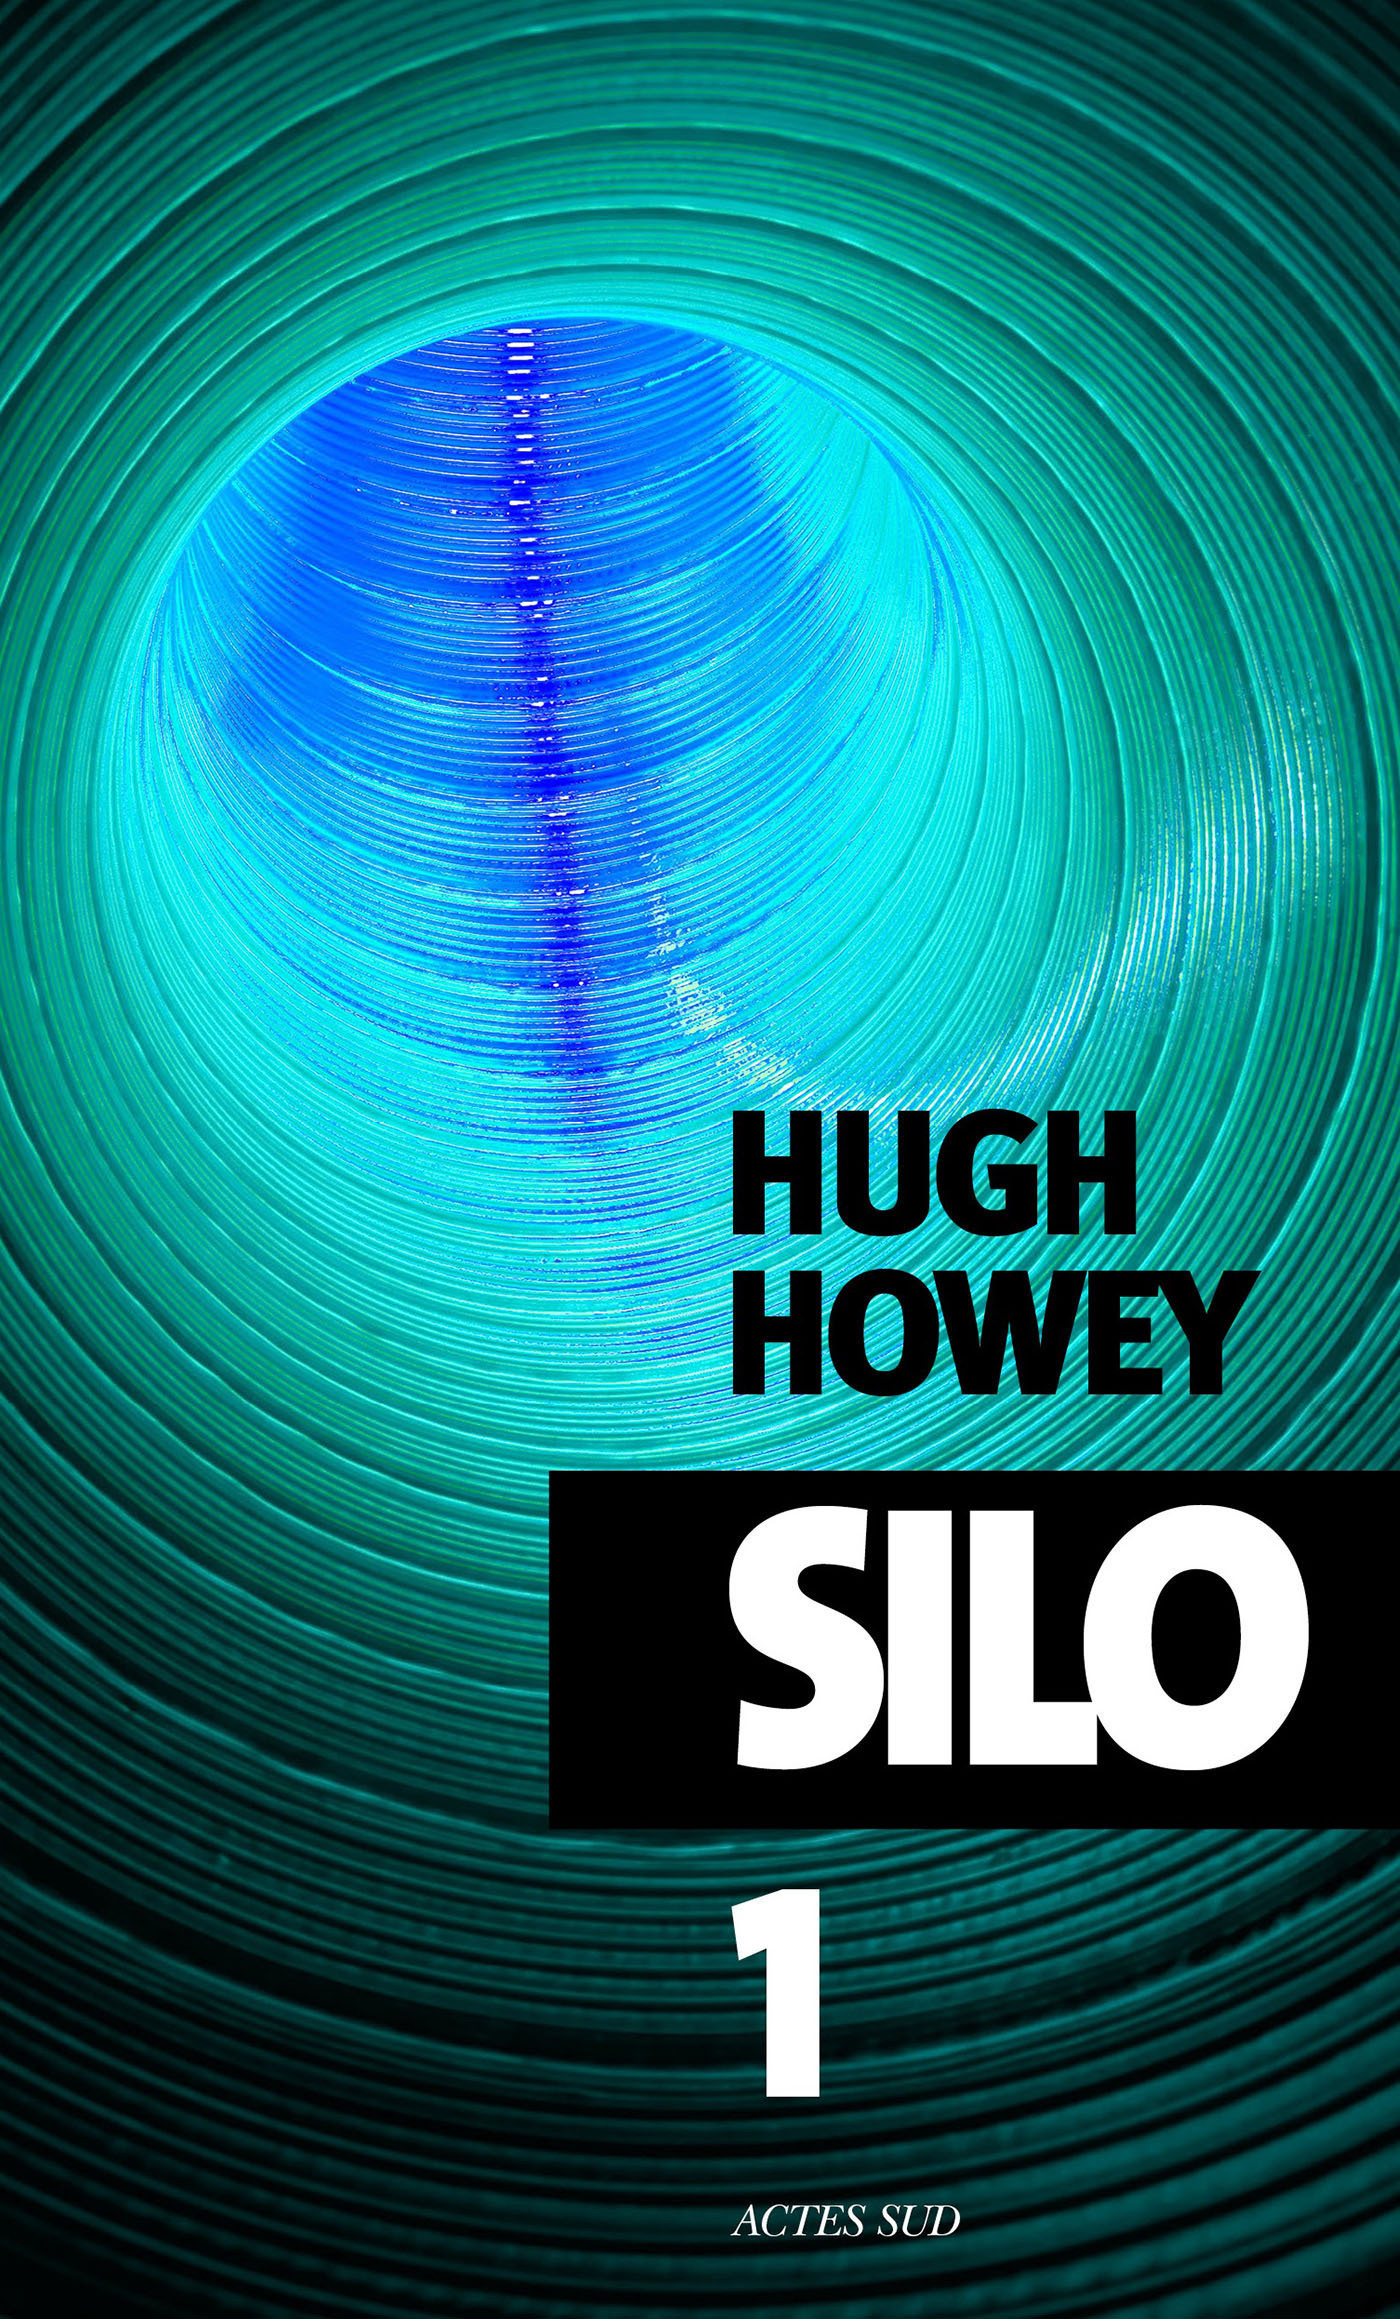 Silo - épisode 1 - Hugh Howey